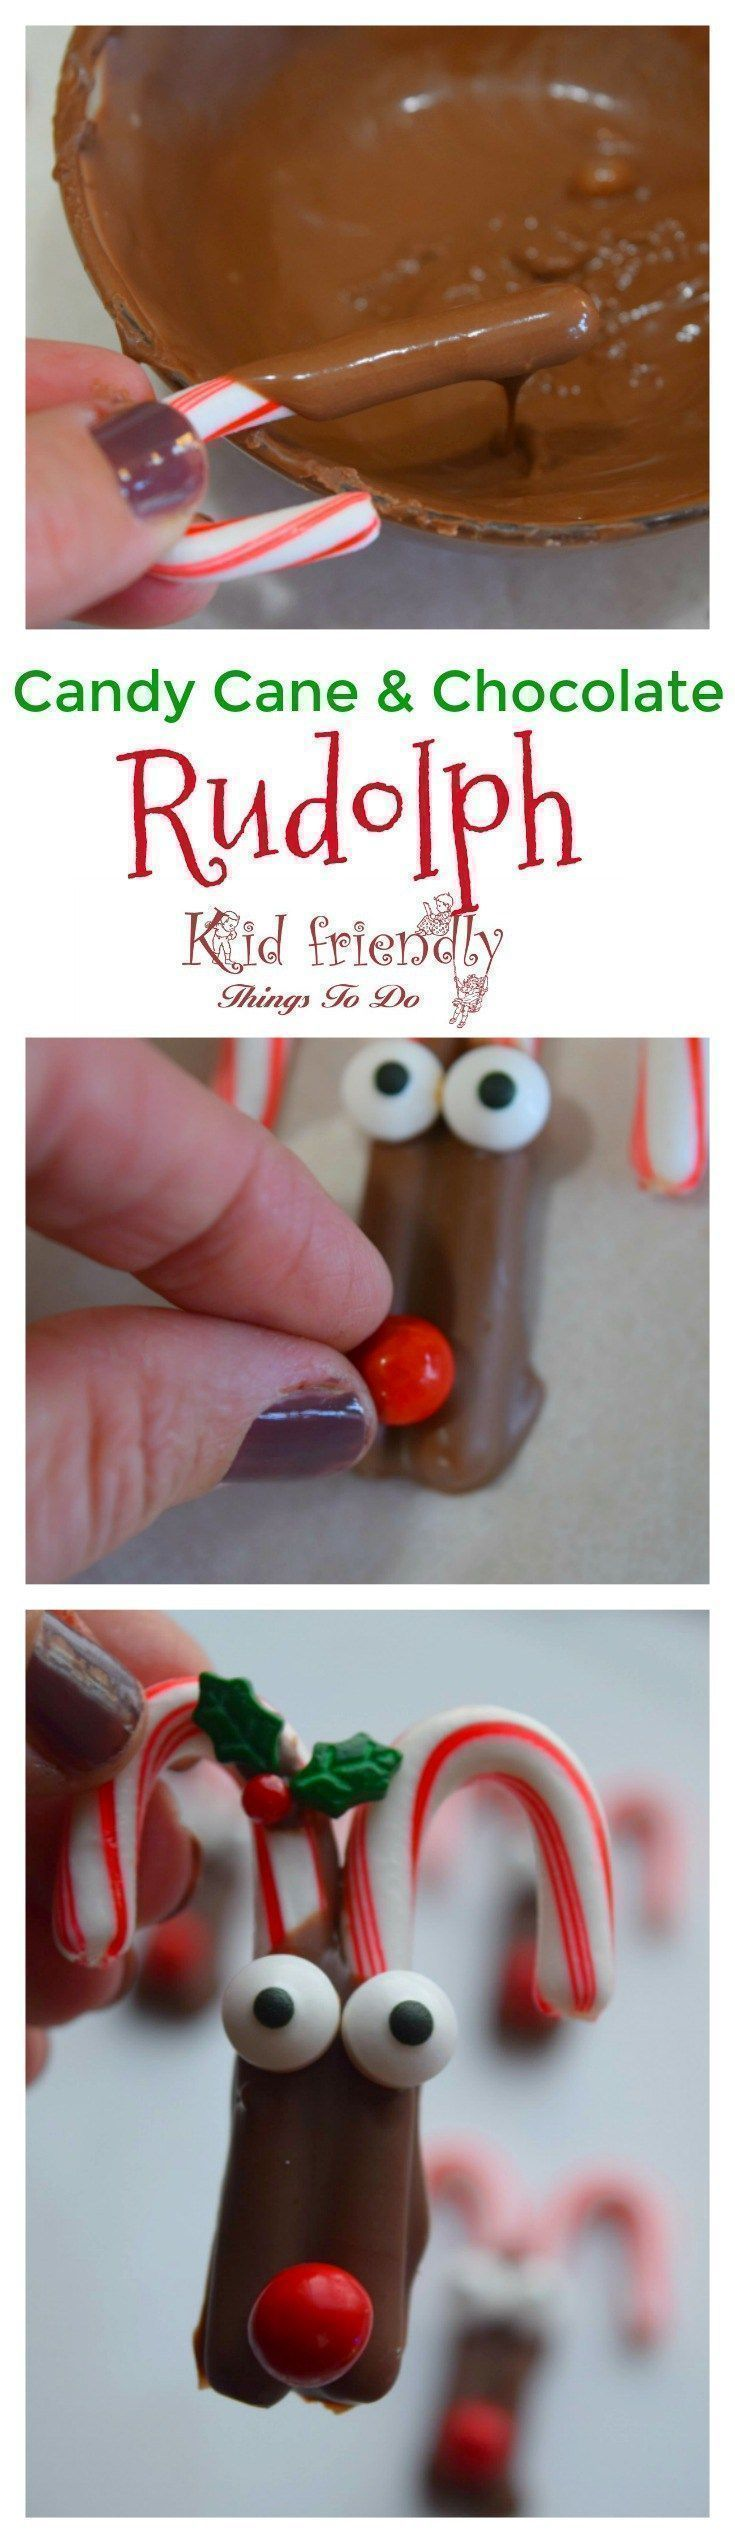 Perfect fun food snack for a Christmas party with kids. - Easy and fun treats for a quick last minute Christmas treat. http://www.kidfriendlythingstodo.com